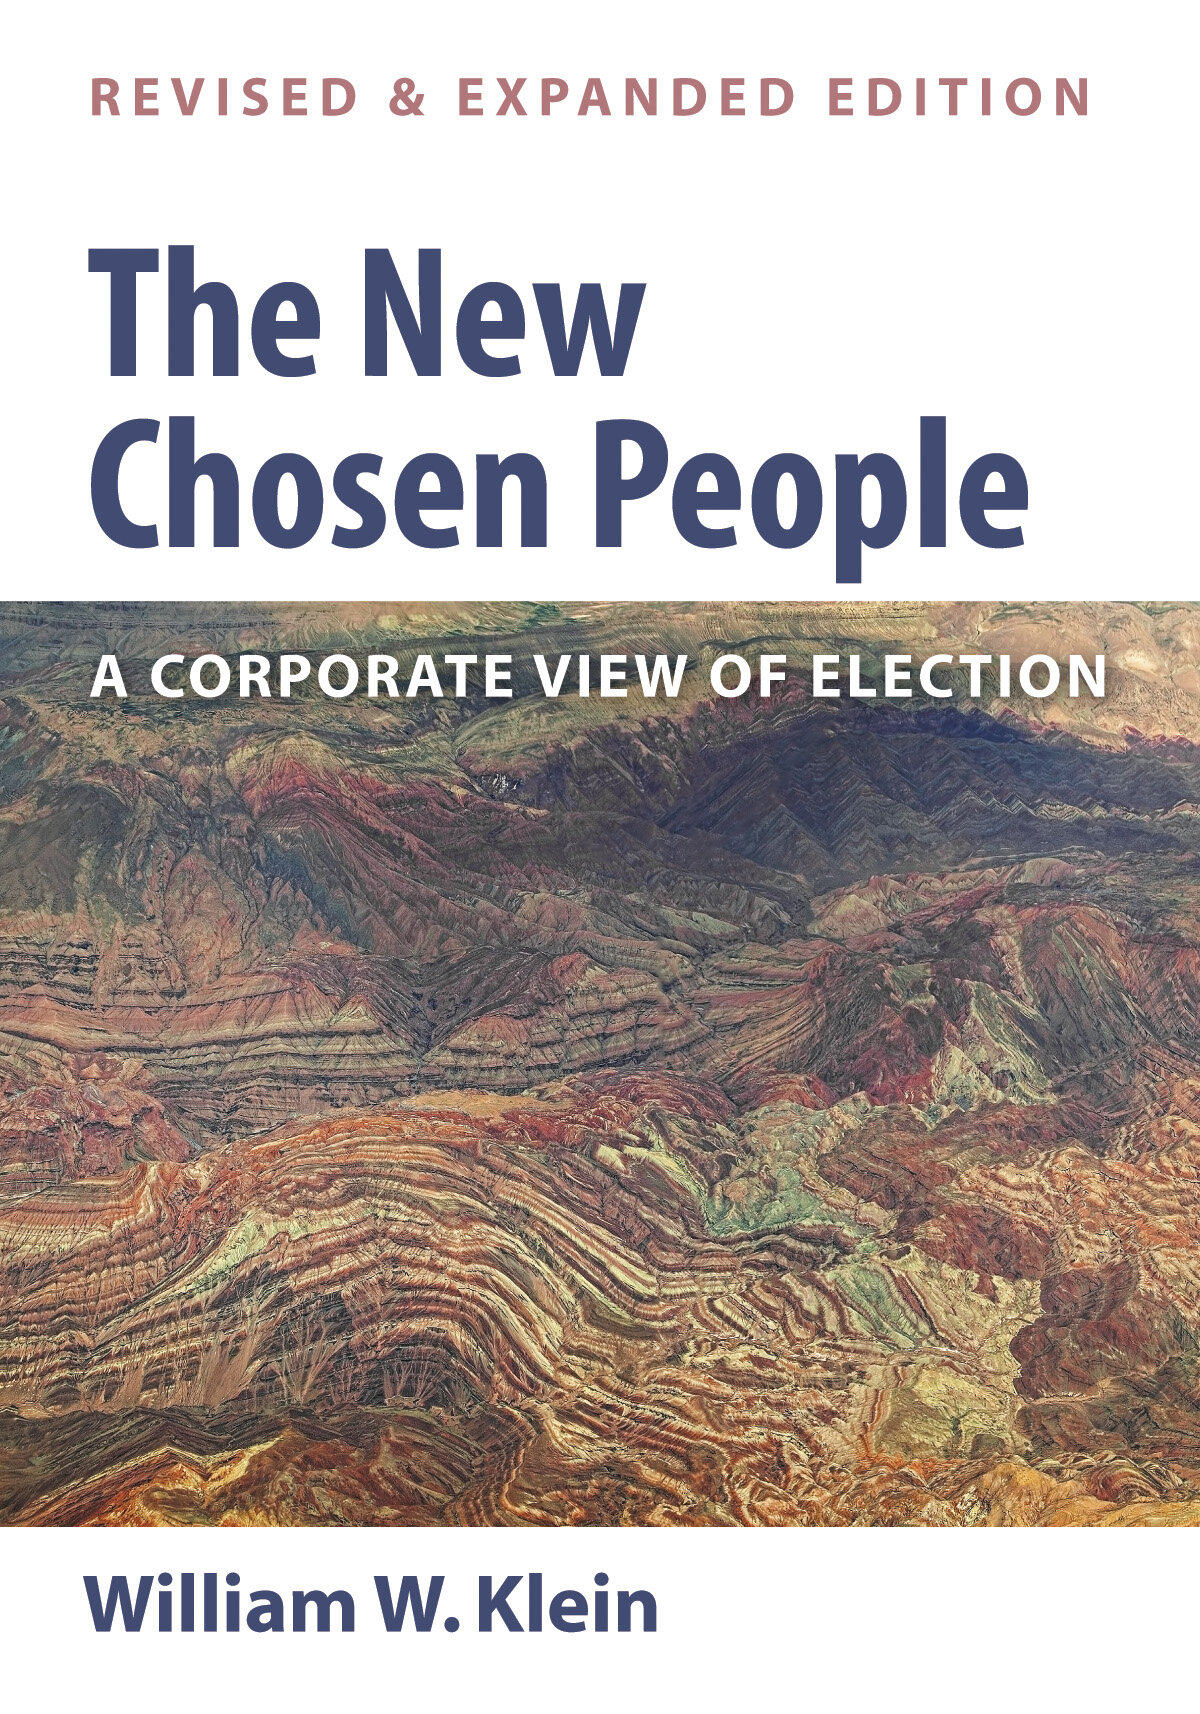 The New Chosen People: A Corporate View of Election, rev. ed.